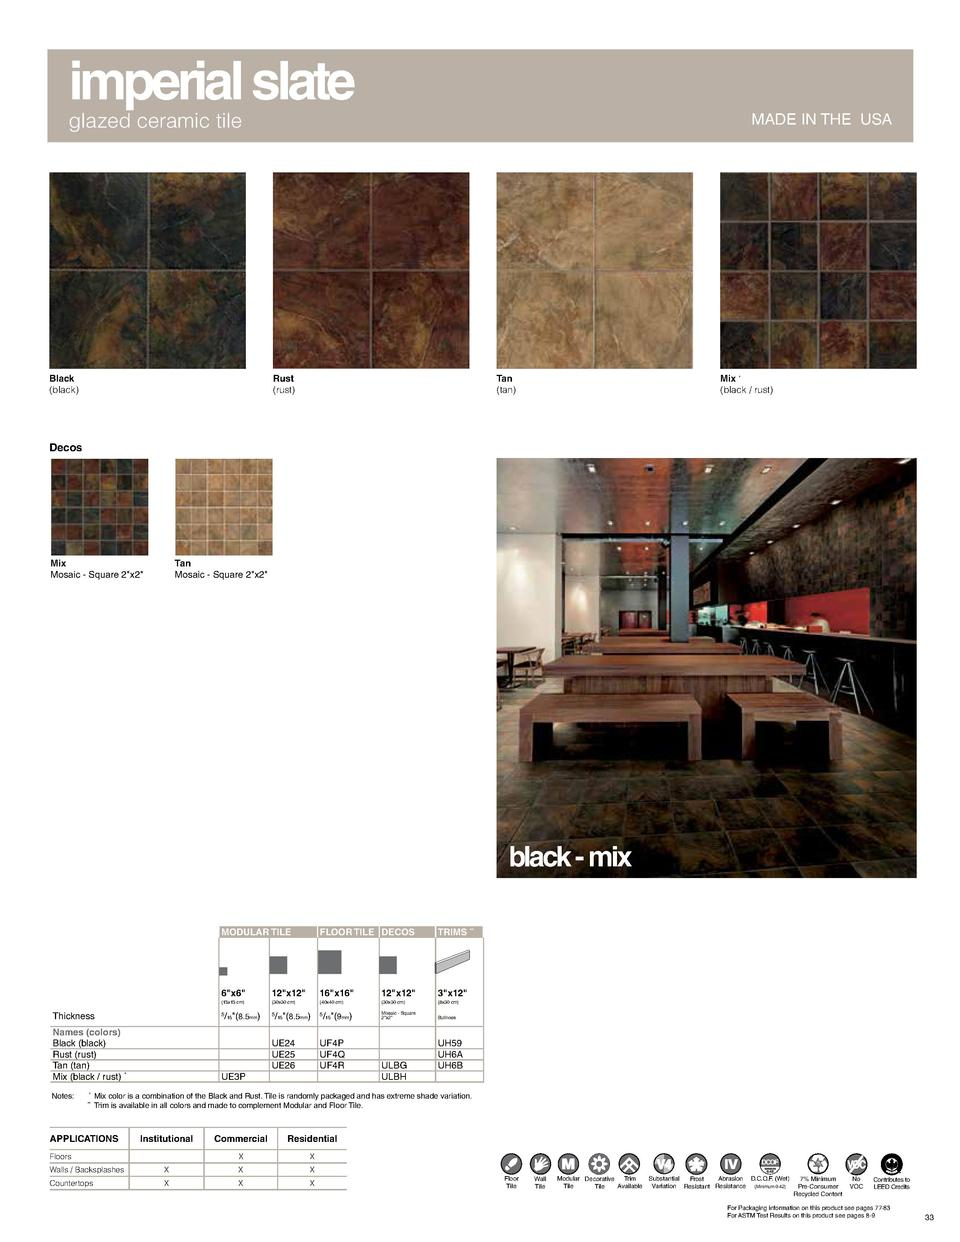 imperial slate glazed ceramic tile  Black  black   MADE IN THE USA  Rust  rust   Tan  tan   Mix    black   rust   Decos  M...